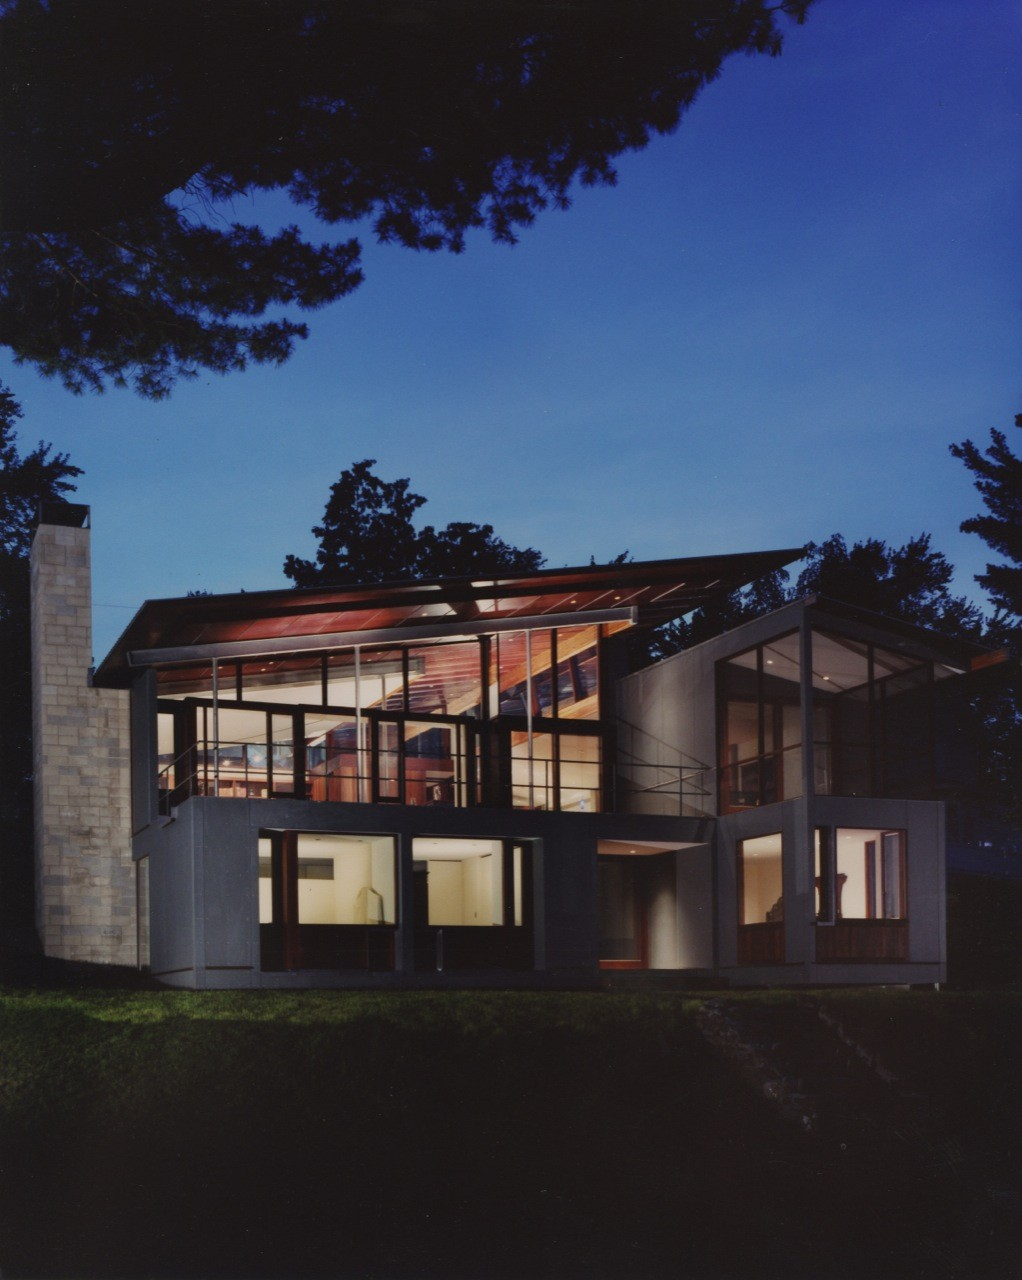 Lake House / Joseph N. Biondo, Courtesy of  joseph n. biondo